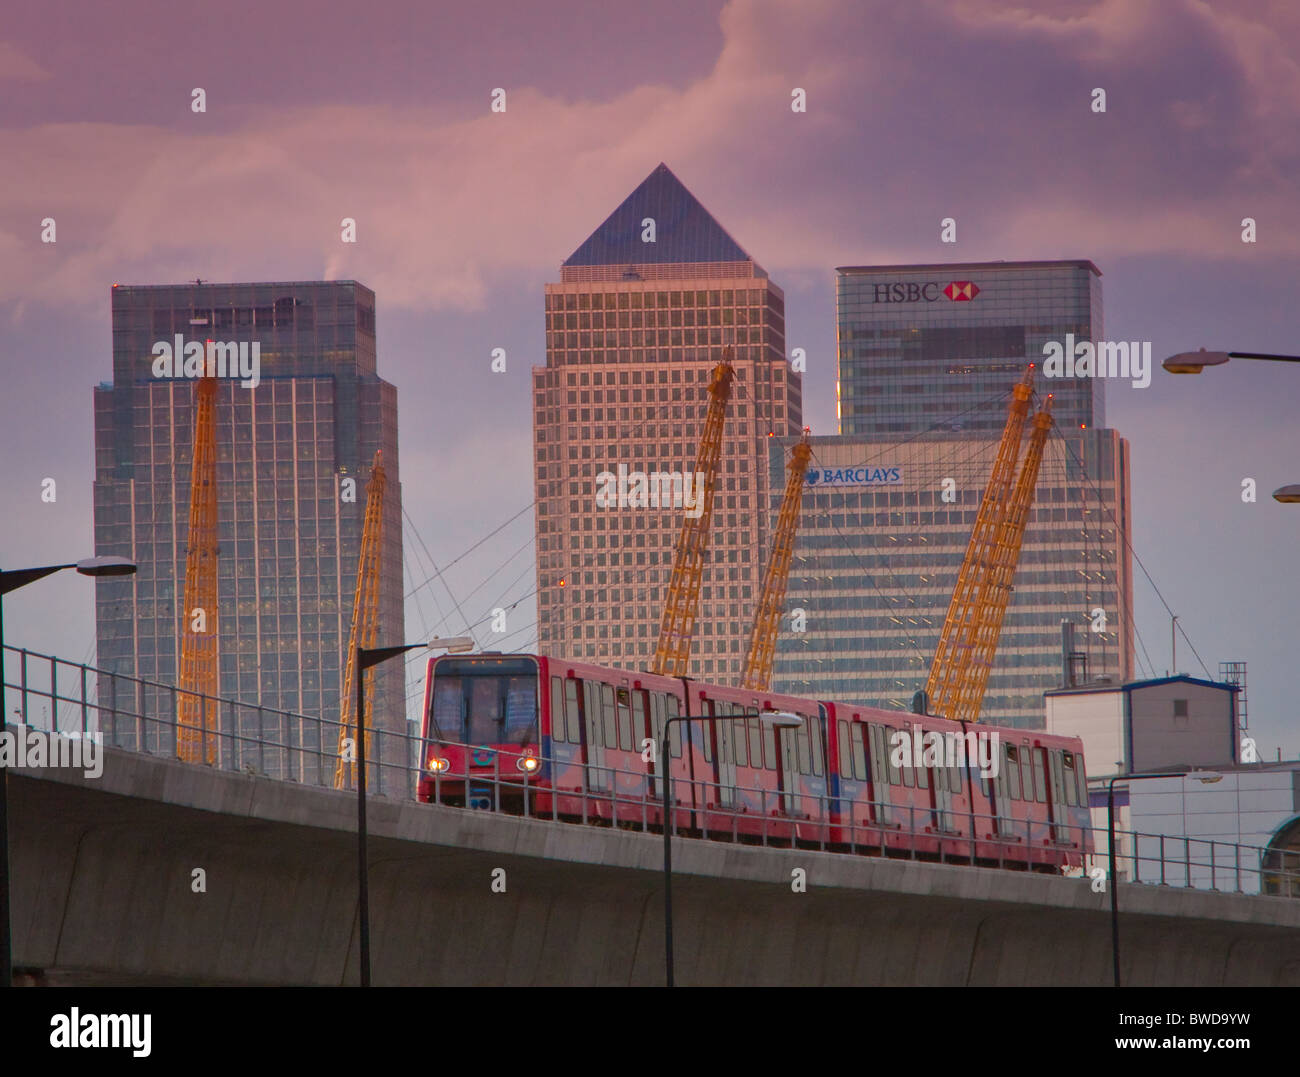 Docklands Light Railway train with Canary Wharf and the towers of the O2 centre behind - Stock Image